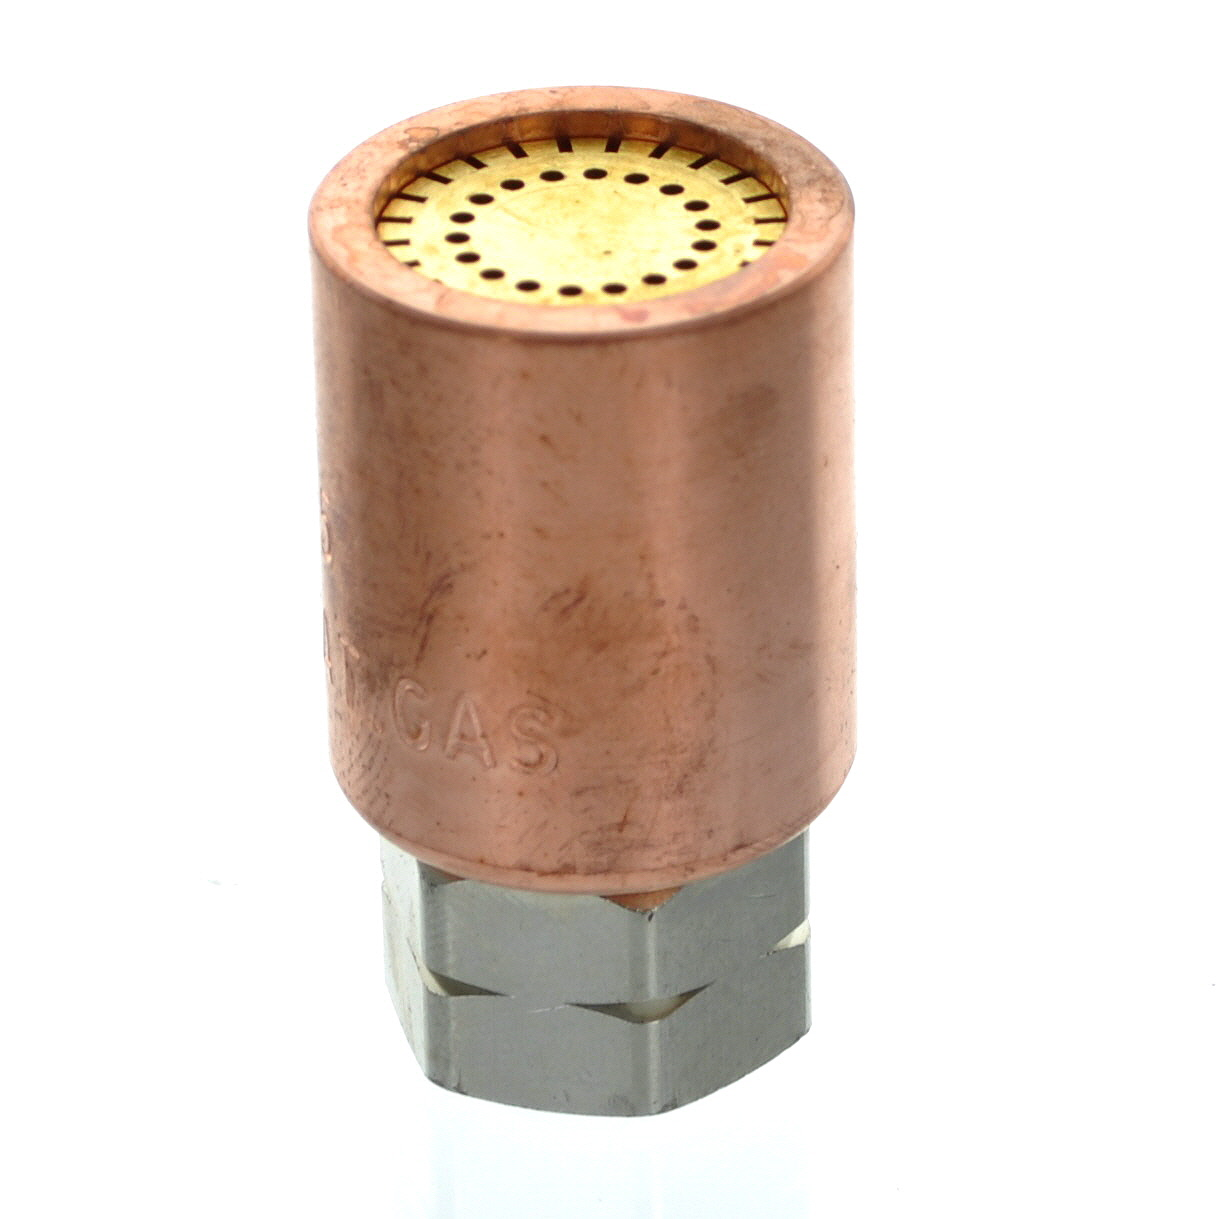 Miller Smith 1495 Heating Tip Replacement Head For ST615 MT615